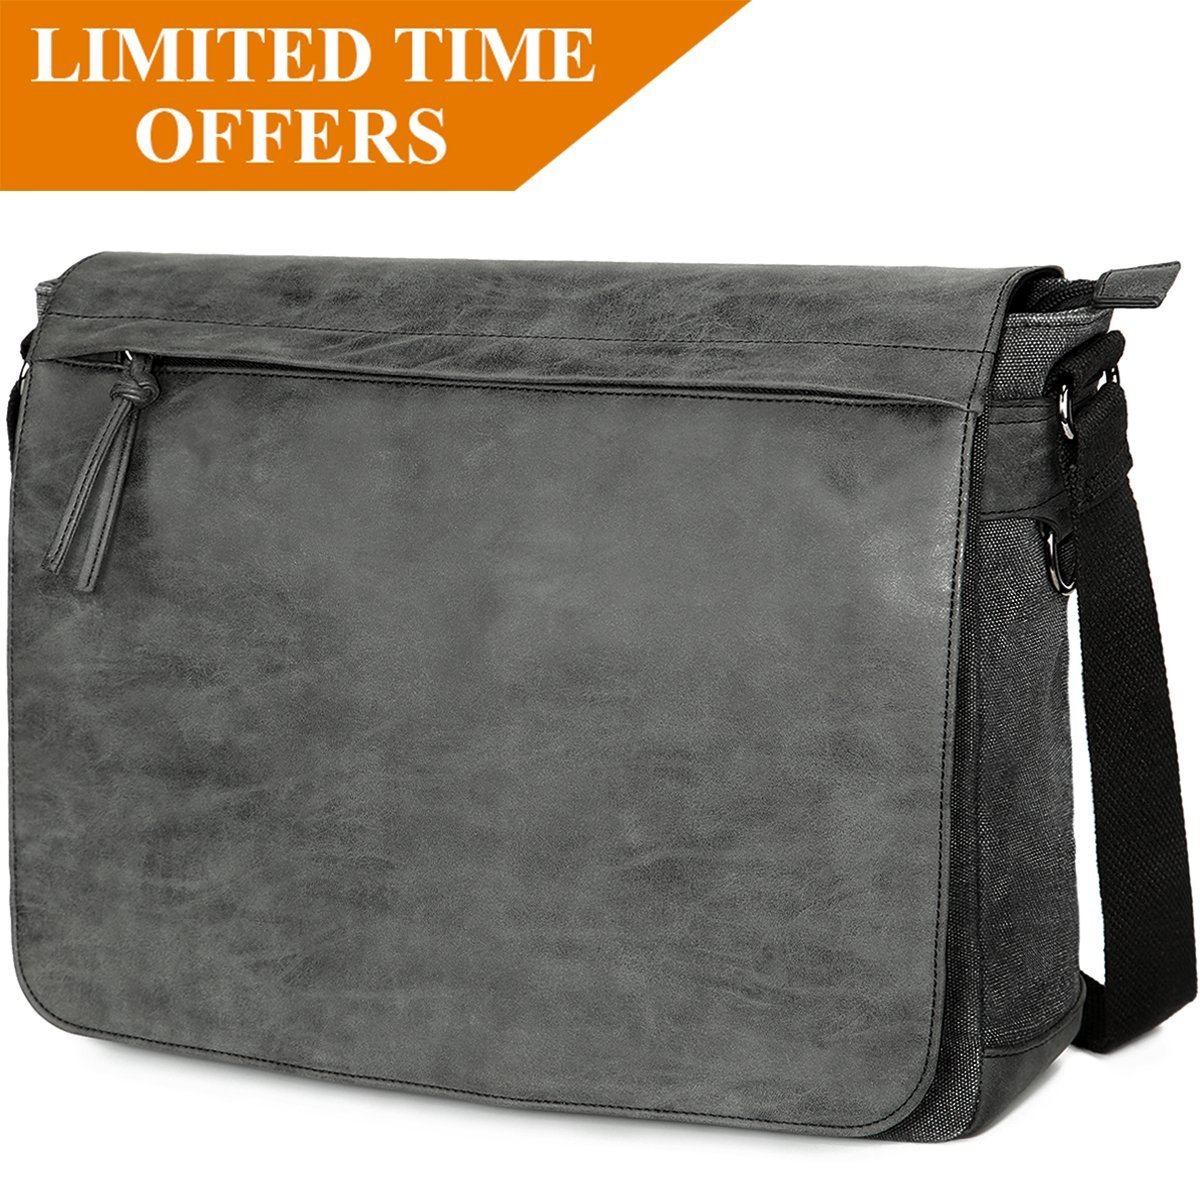 "Mens Laptop Messenger Bags 15.6"" Water Resistant Shoulder Bag Tocode PU Leather Canvas Satchel Crossbody Bags Brifecase Office Bag Large Computer Bag for Work College School Travel, Black by Tocode (Image #1)"